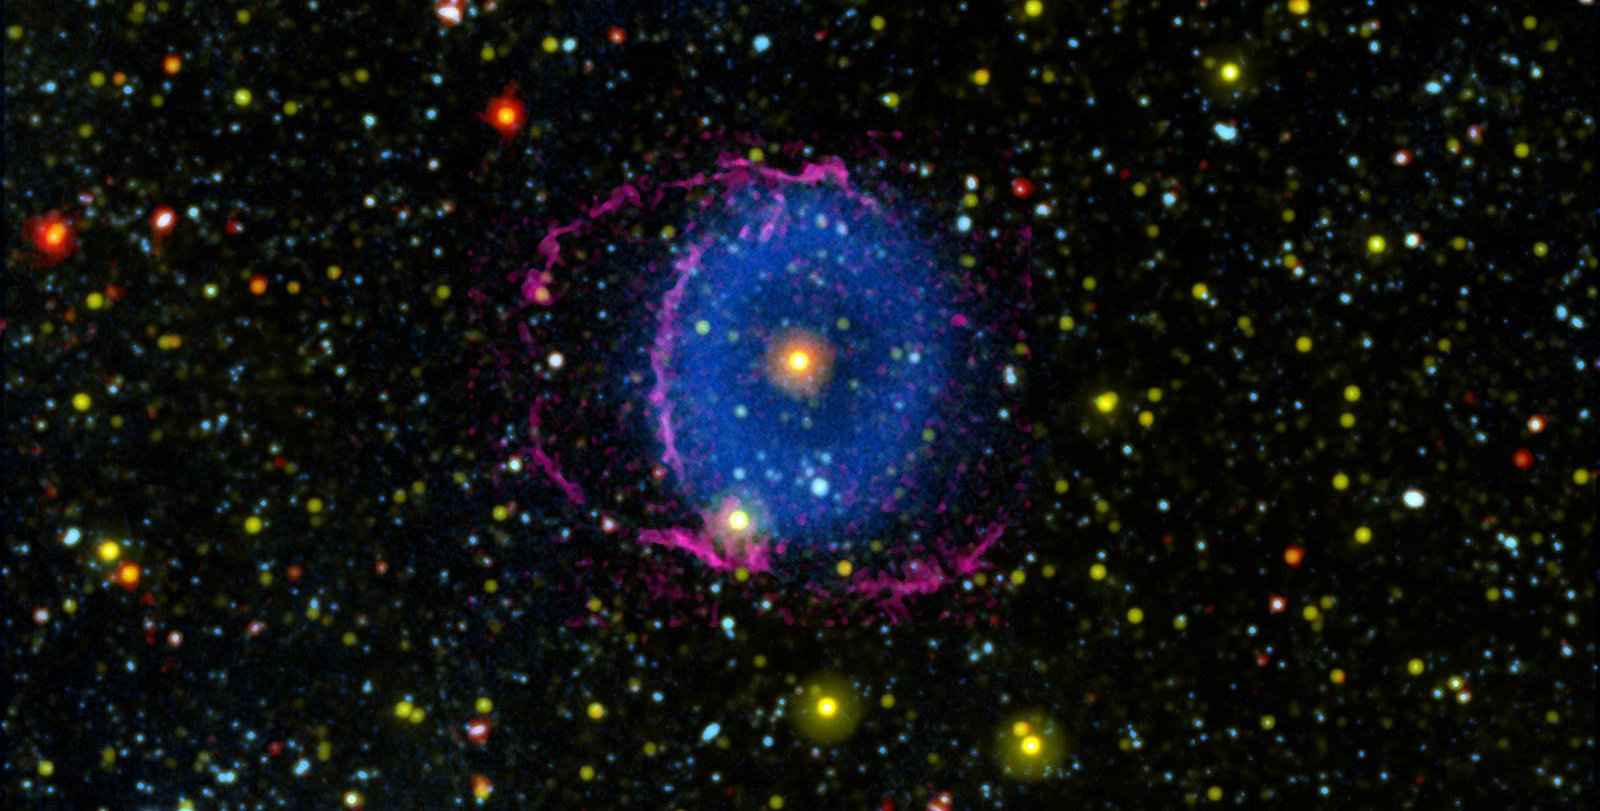 Image of the Blue Ring Nebula from GALEX and other telescopes, combined